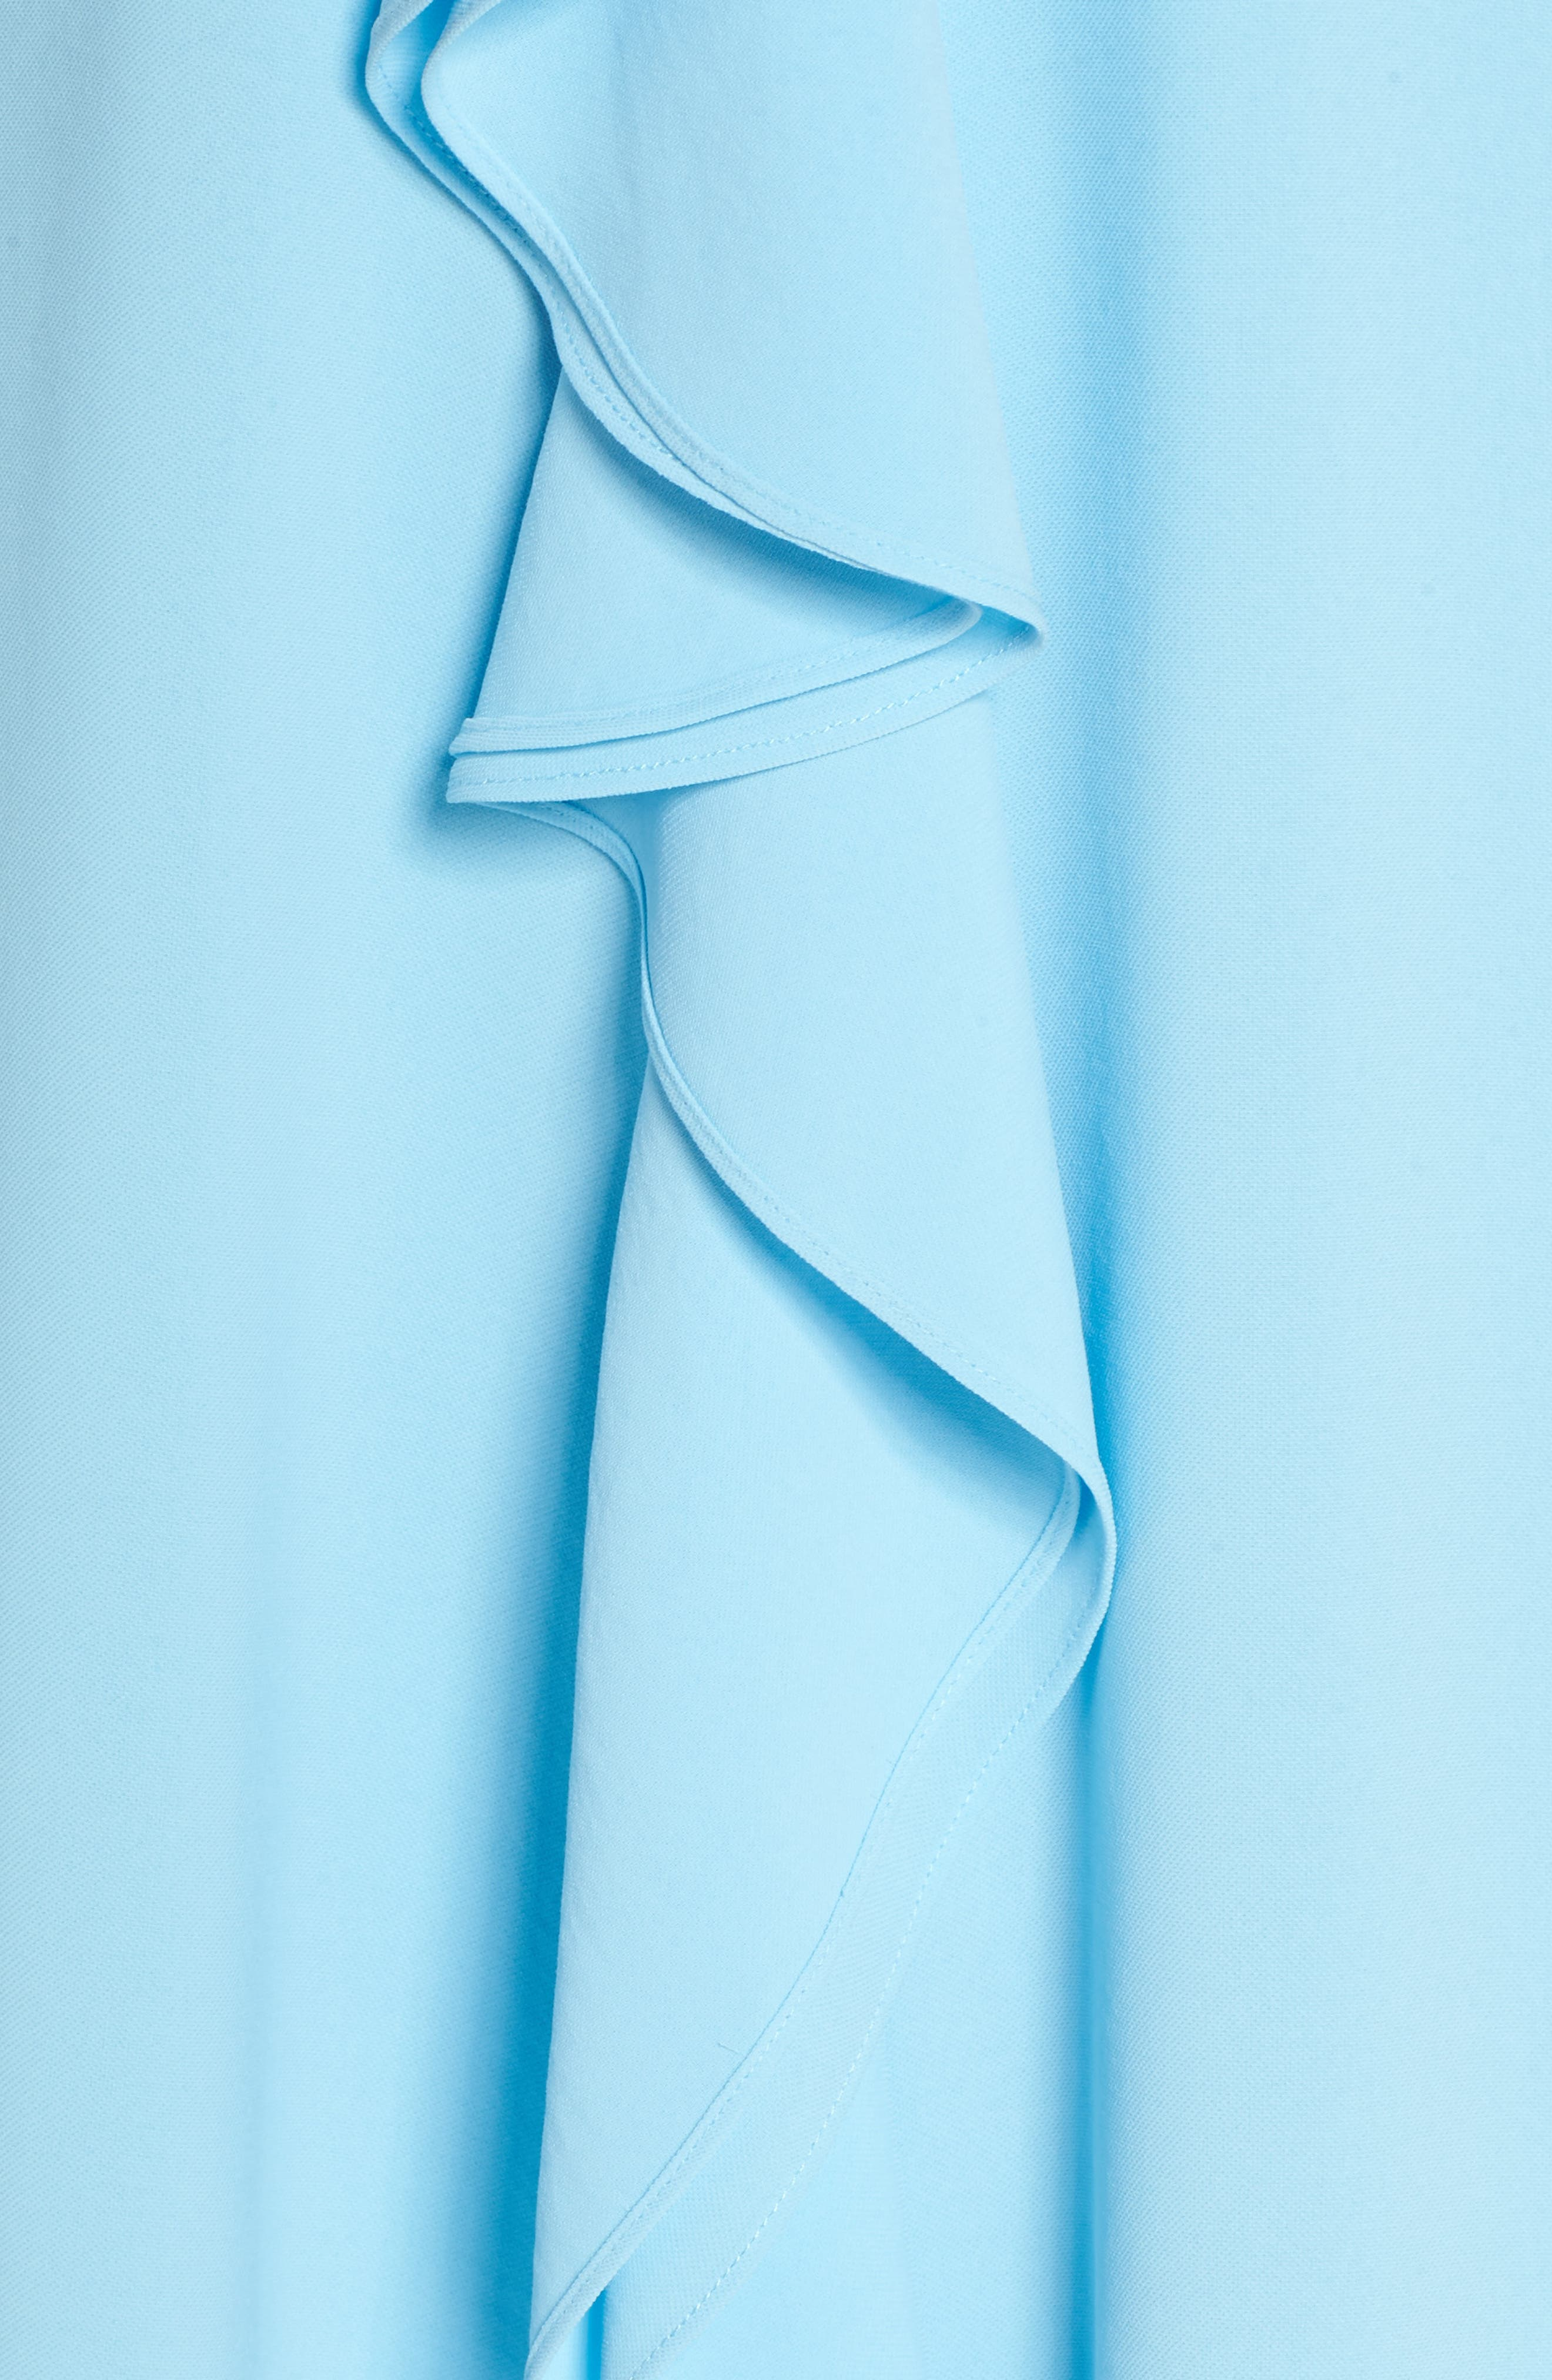 Double Ruffle Gauzy Crepe Shift Dress,                             Alternate thumbnail 5, color,                             Azure Mist